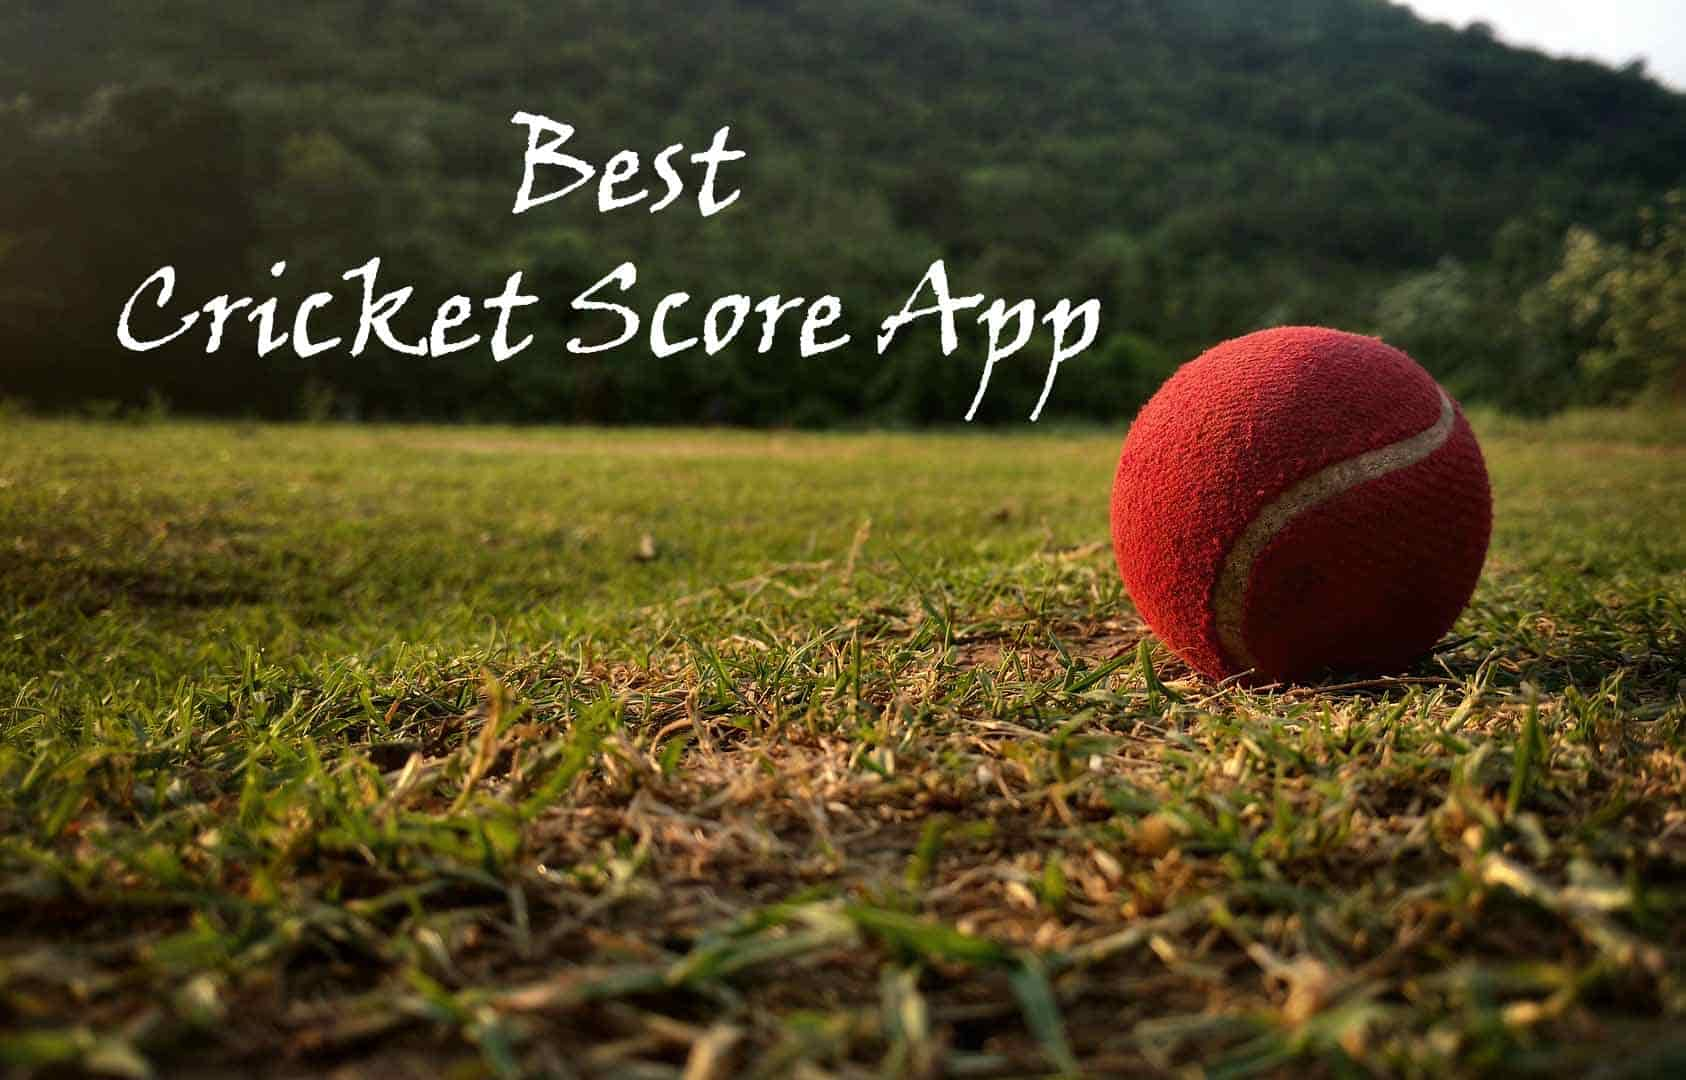 Best Cricket Score App